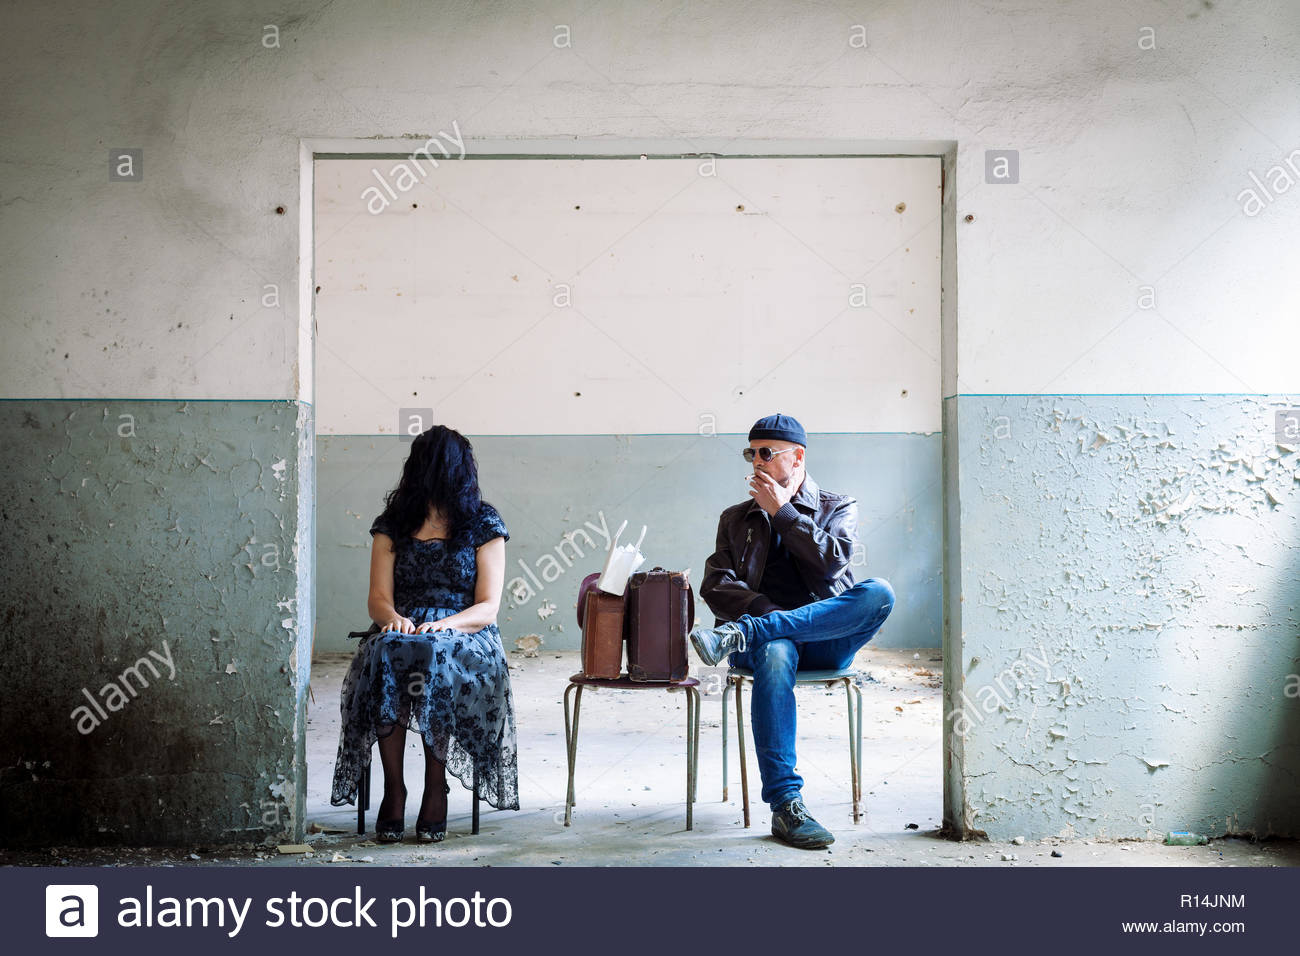 Two strangers sitting on a chair - Stock Image